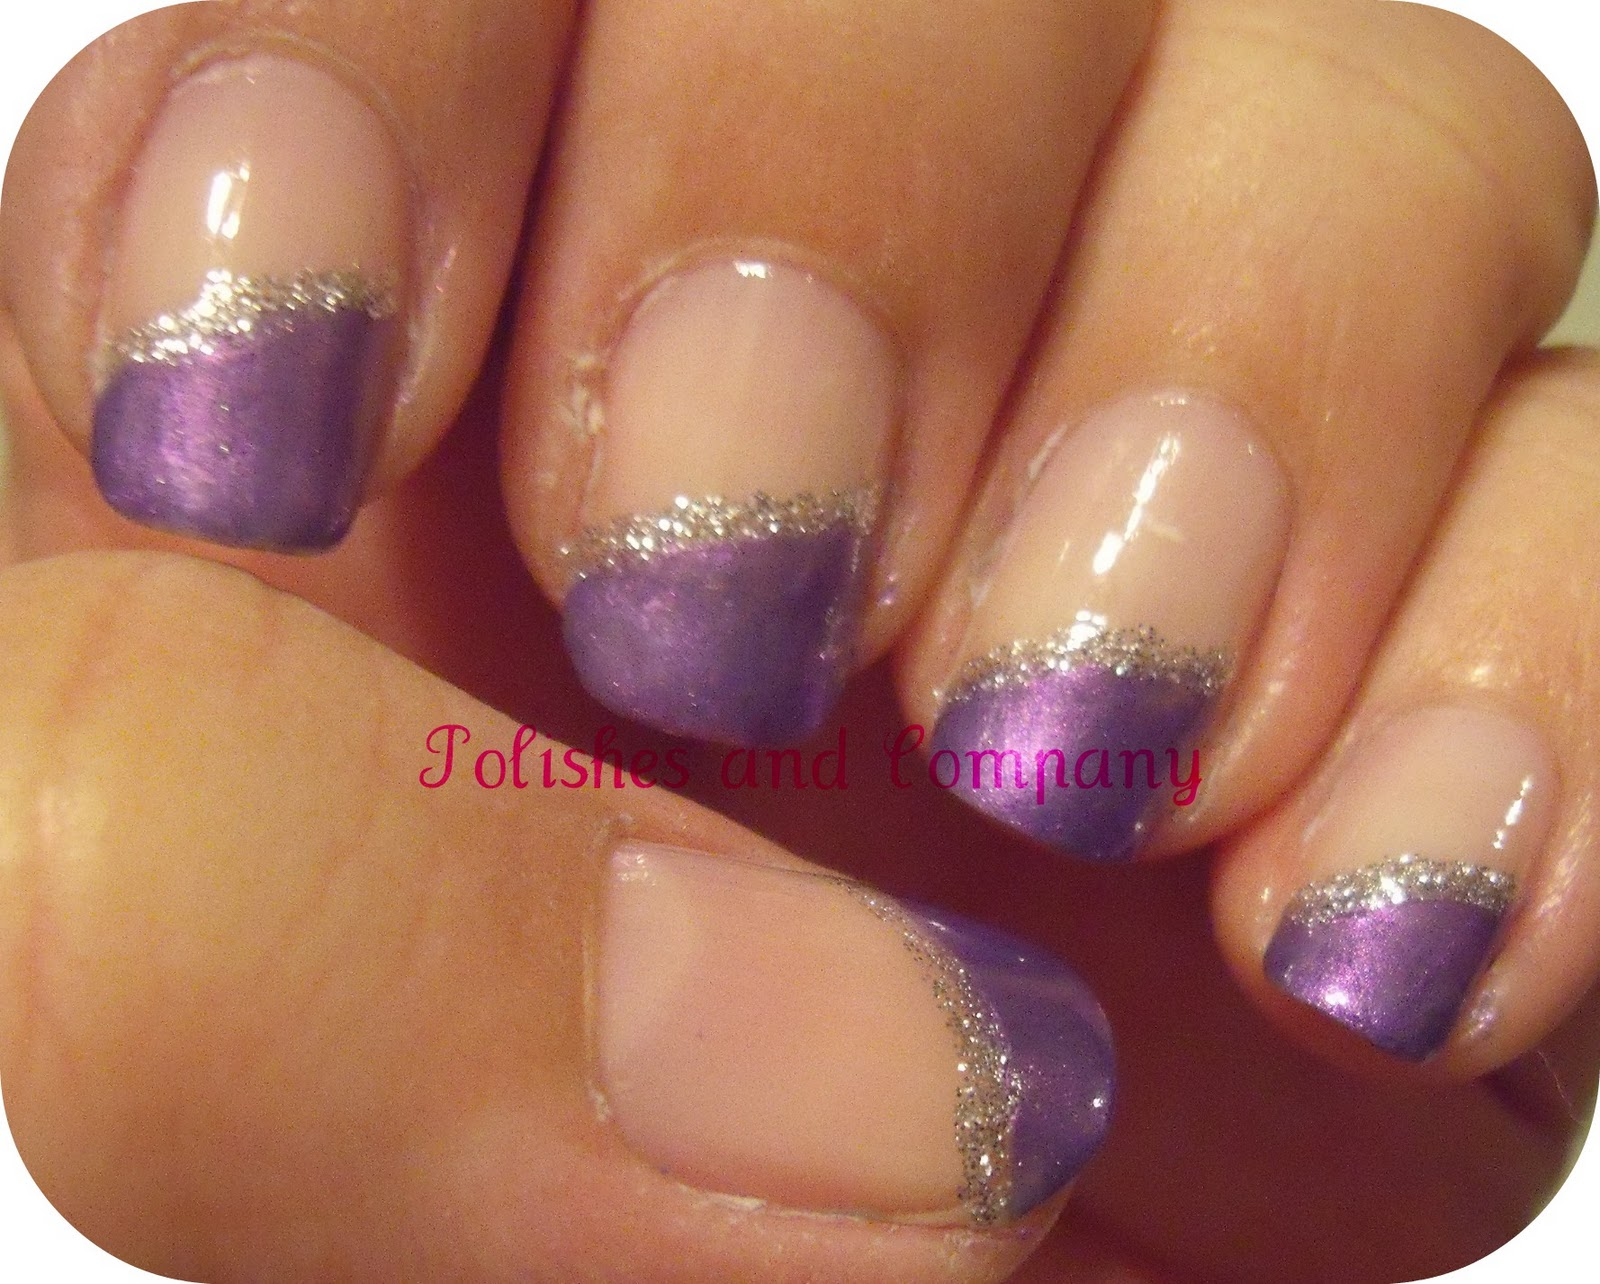 Polishes And Company: French manis from the vault